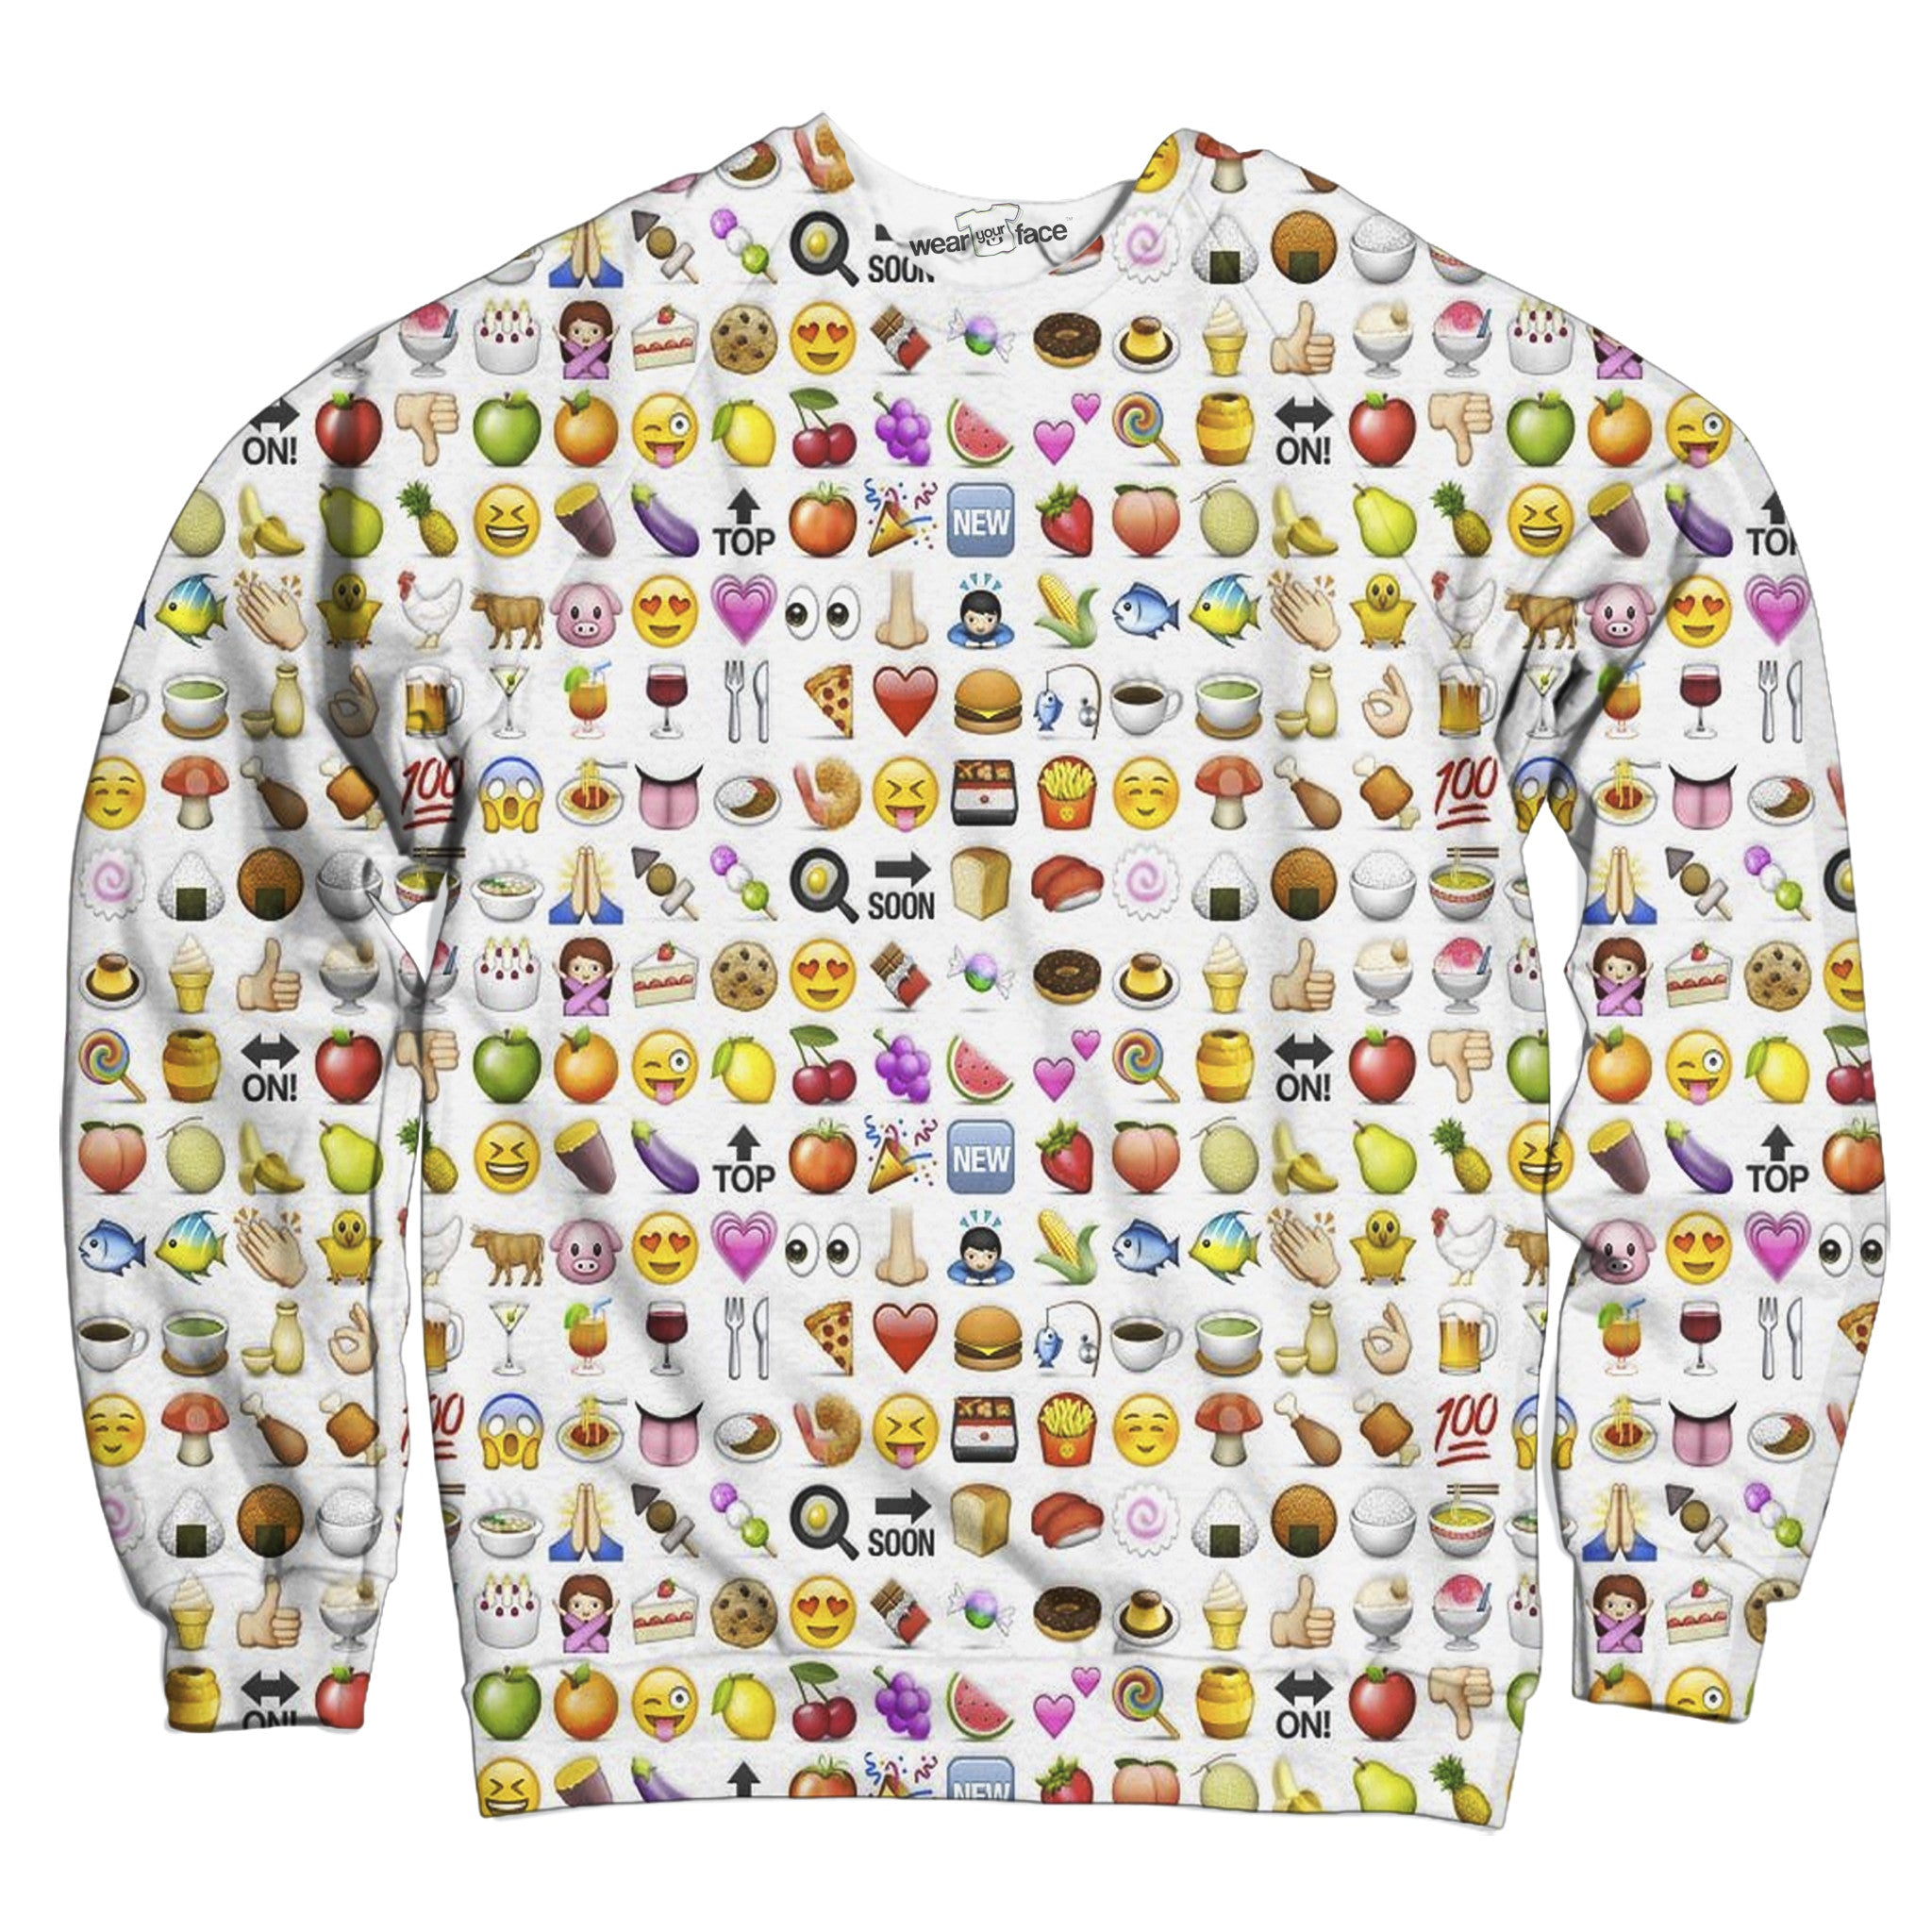 Every Emoji Sweatshirt